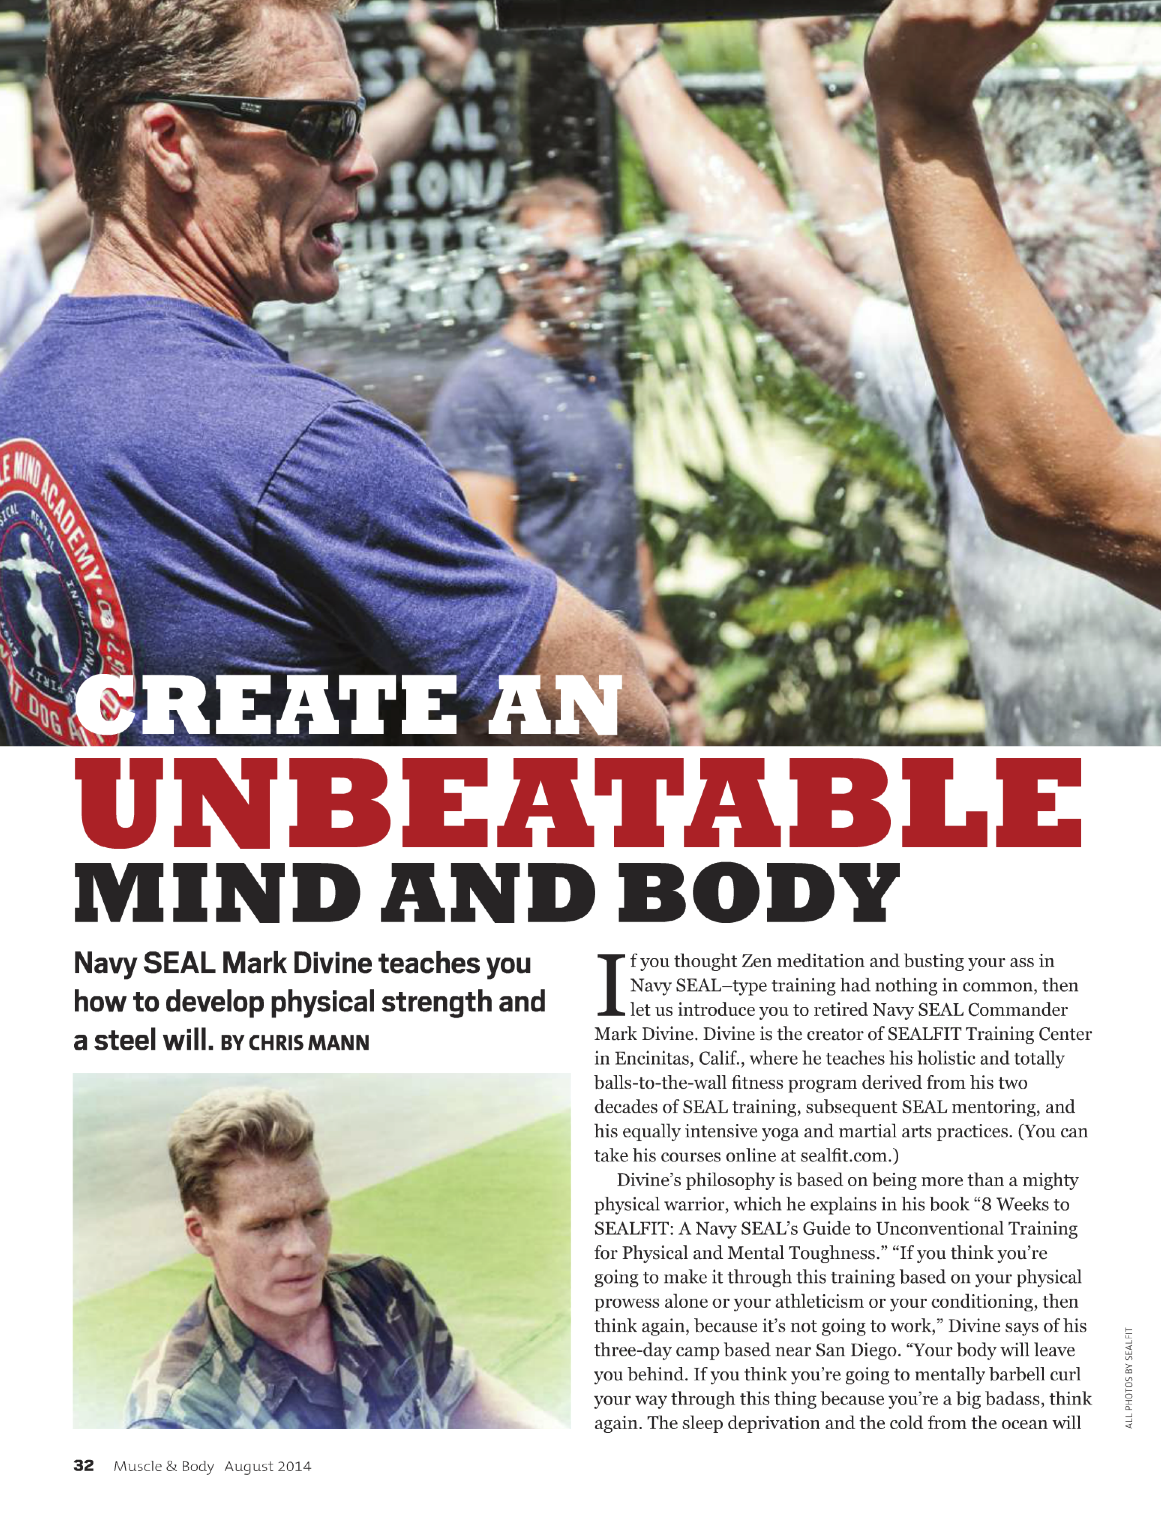 MUSCLE & BODY • AUG. 2014